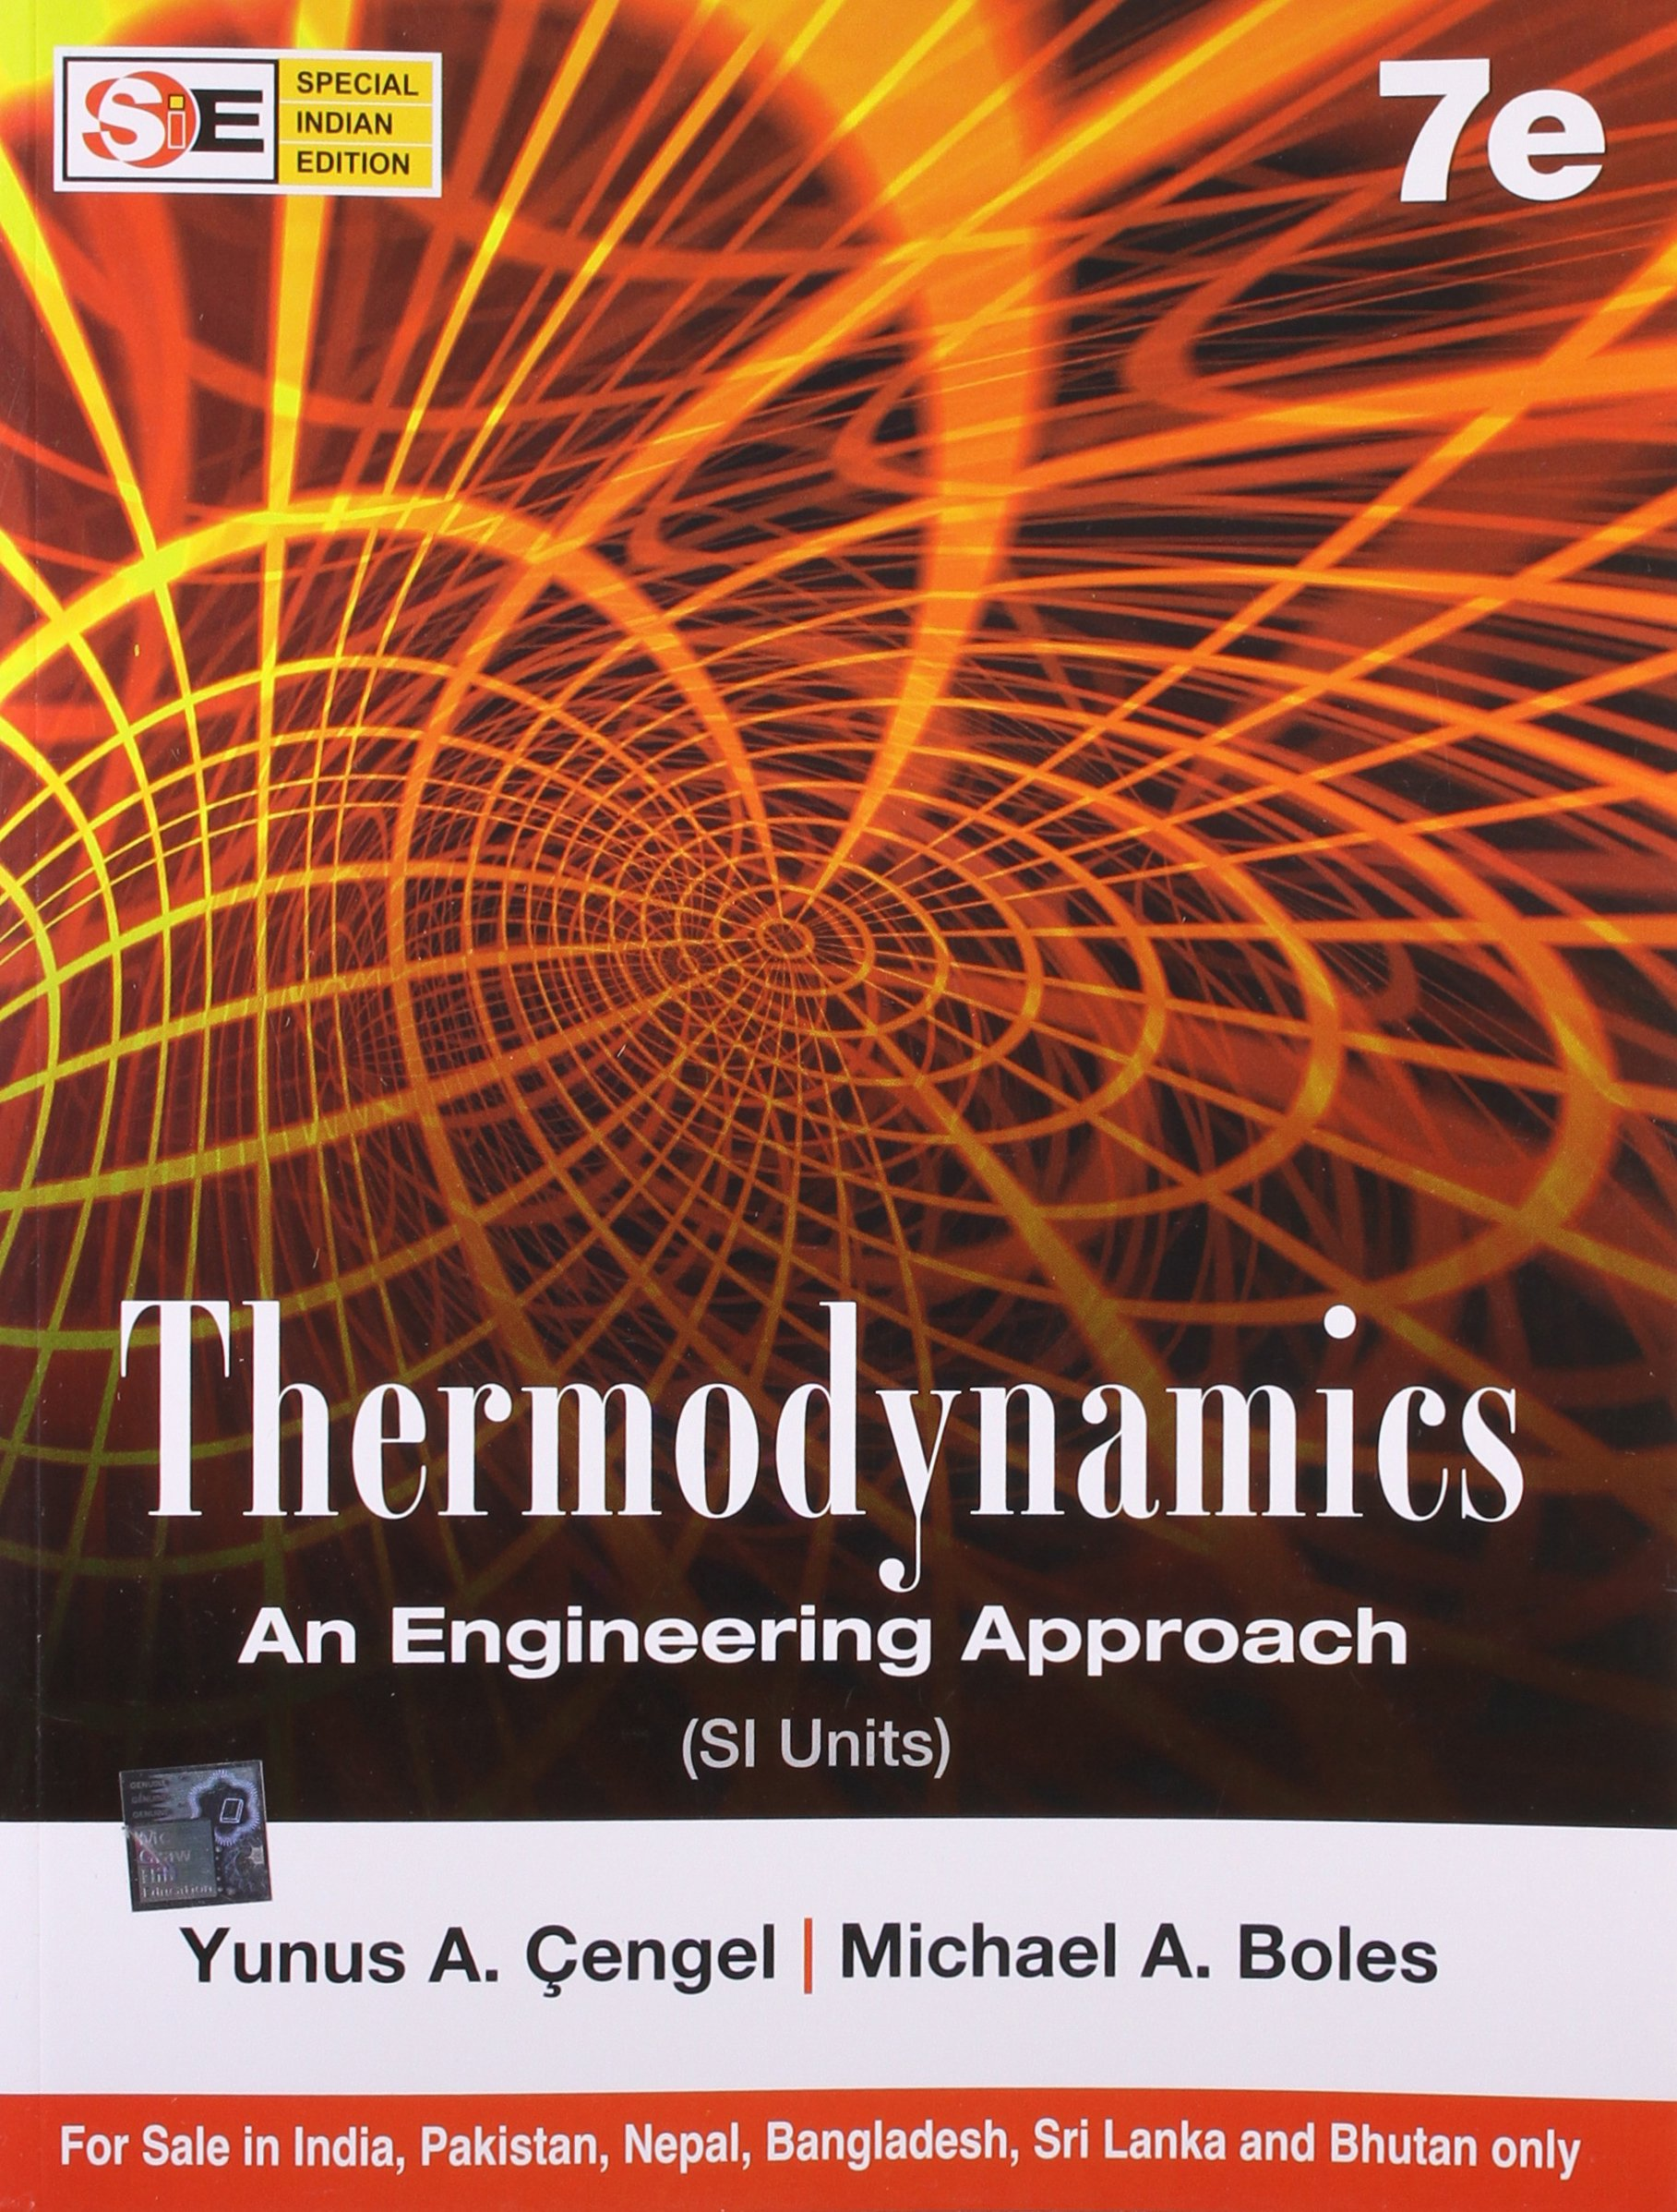 Cengel and boles thermodynamics 8th edition pdf